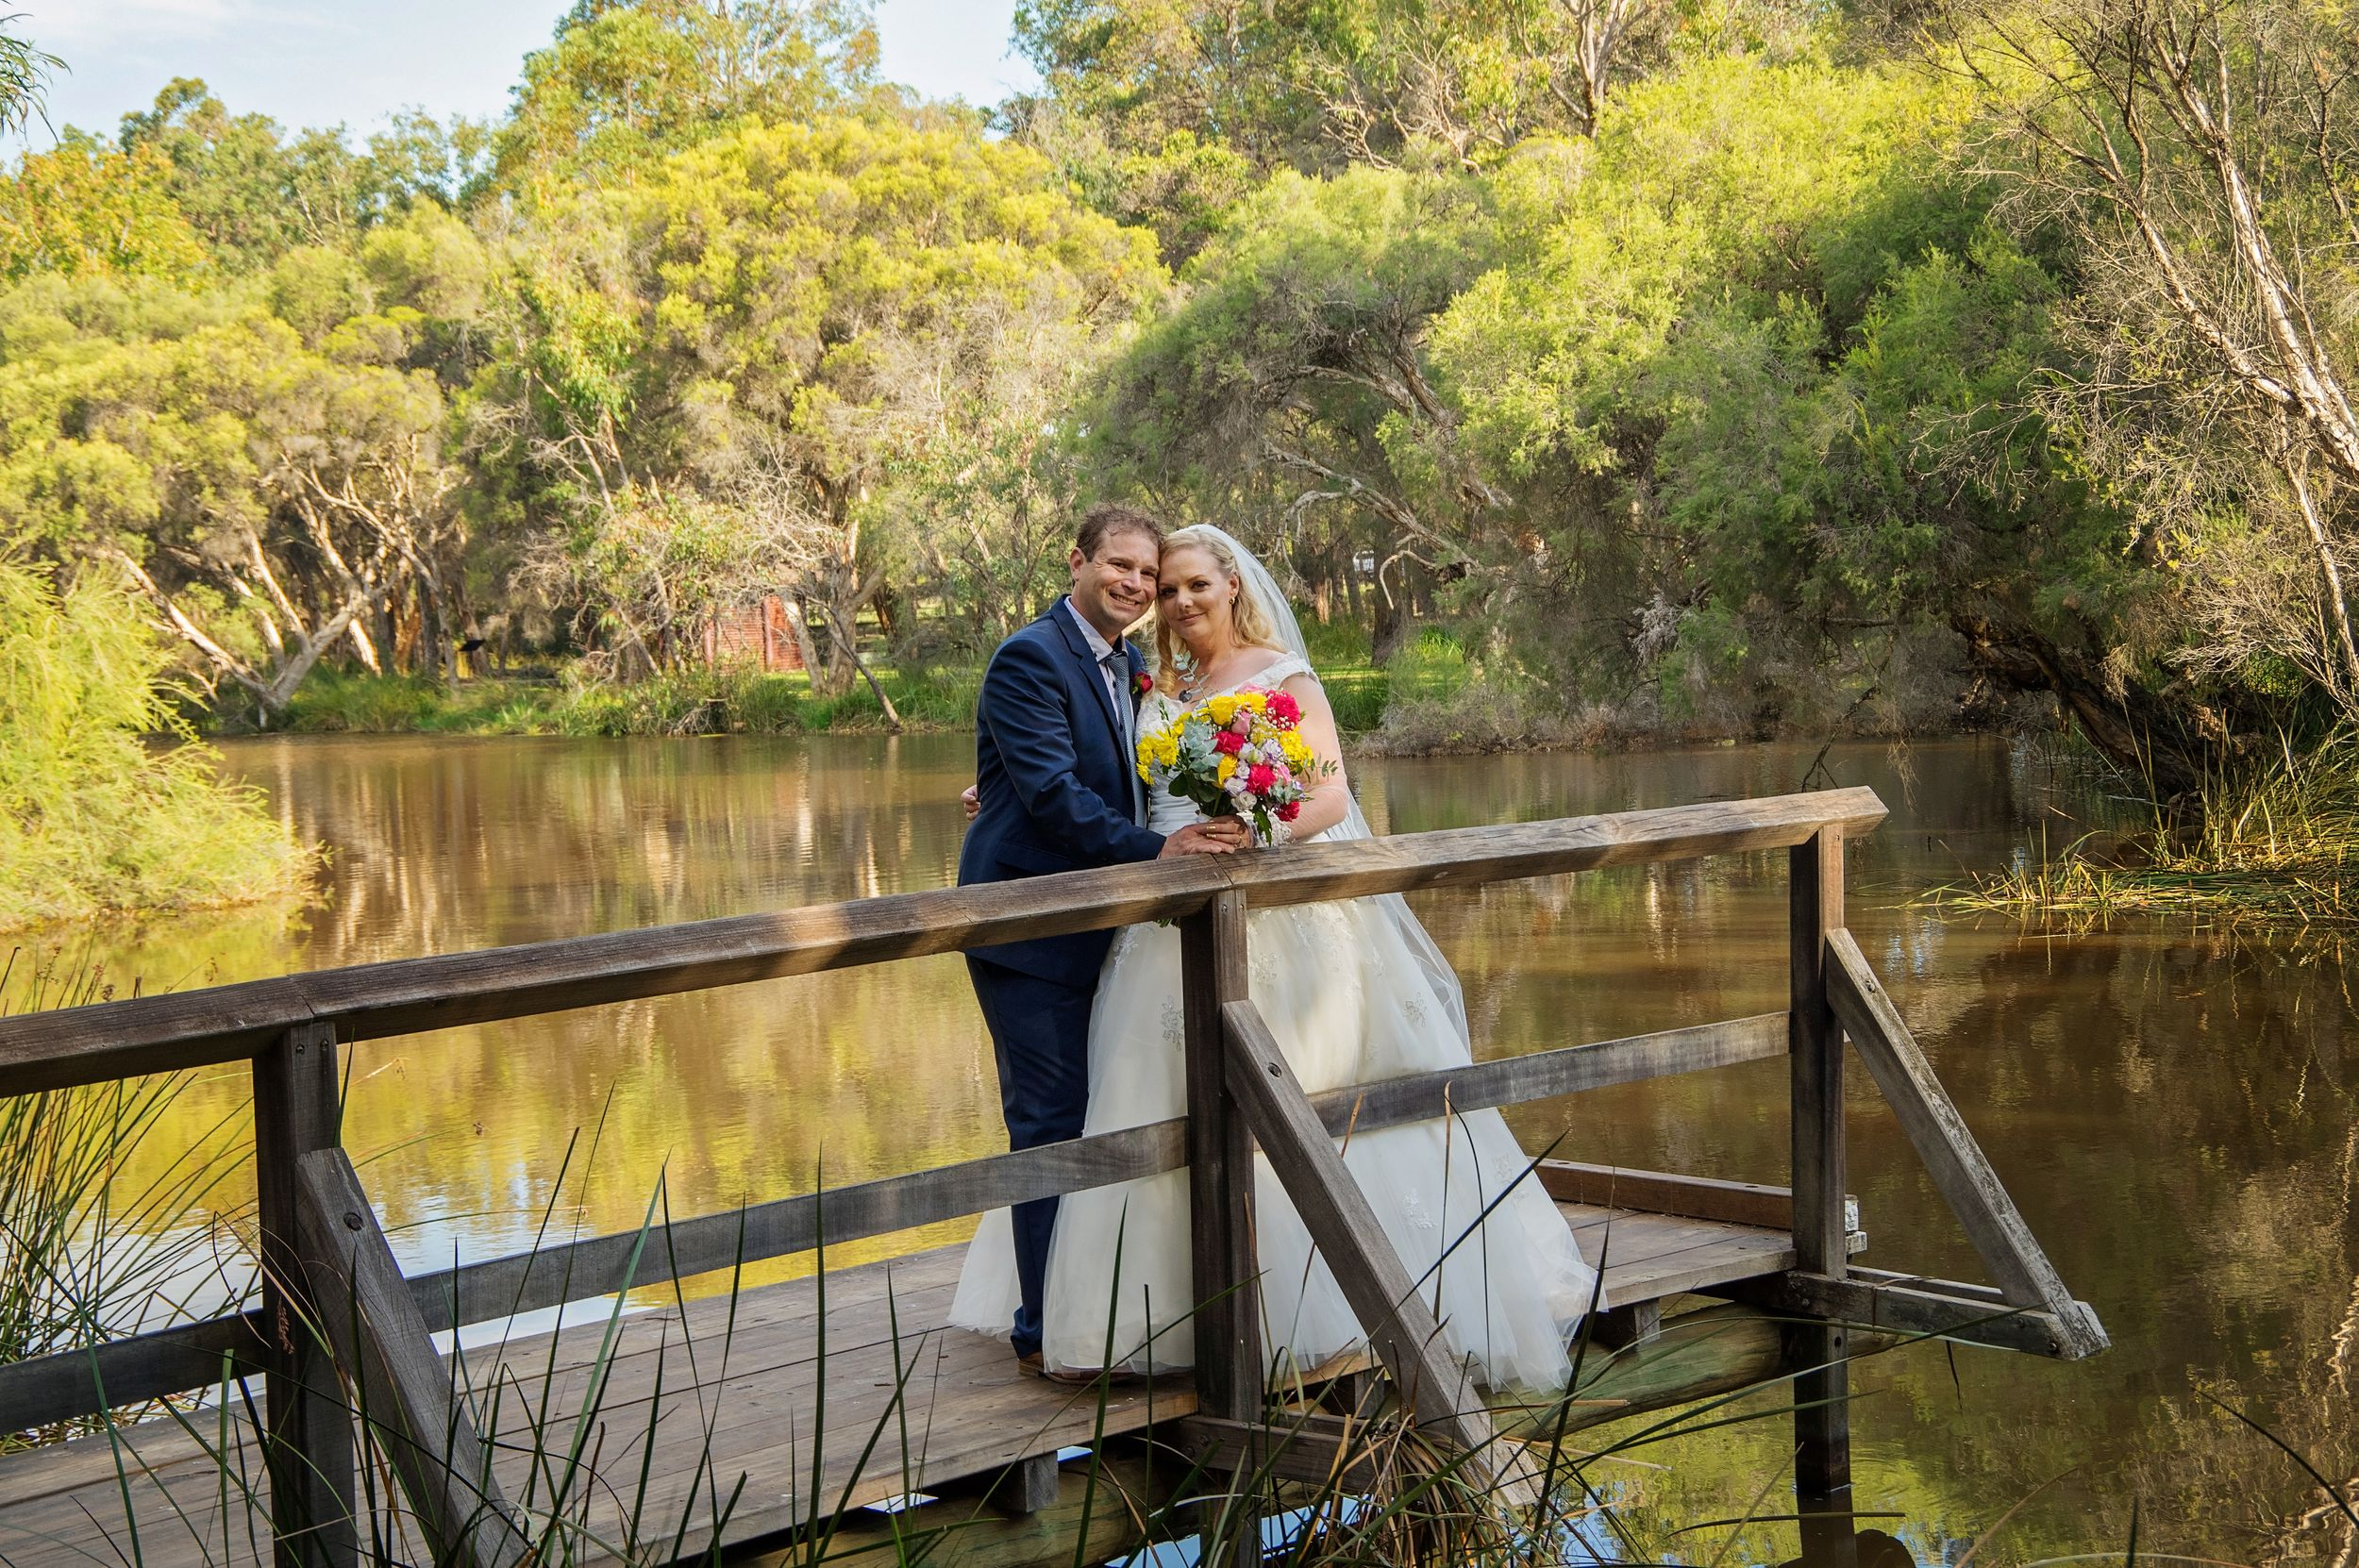 bride and groom posing on bridge at Whiteman park